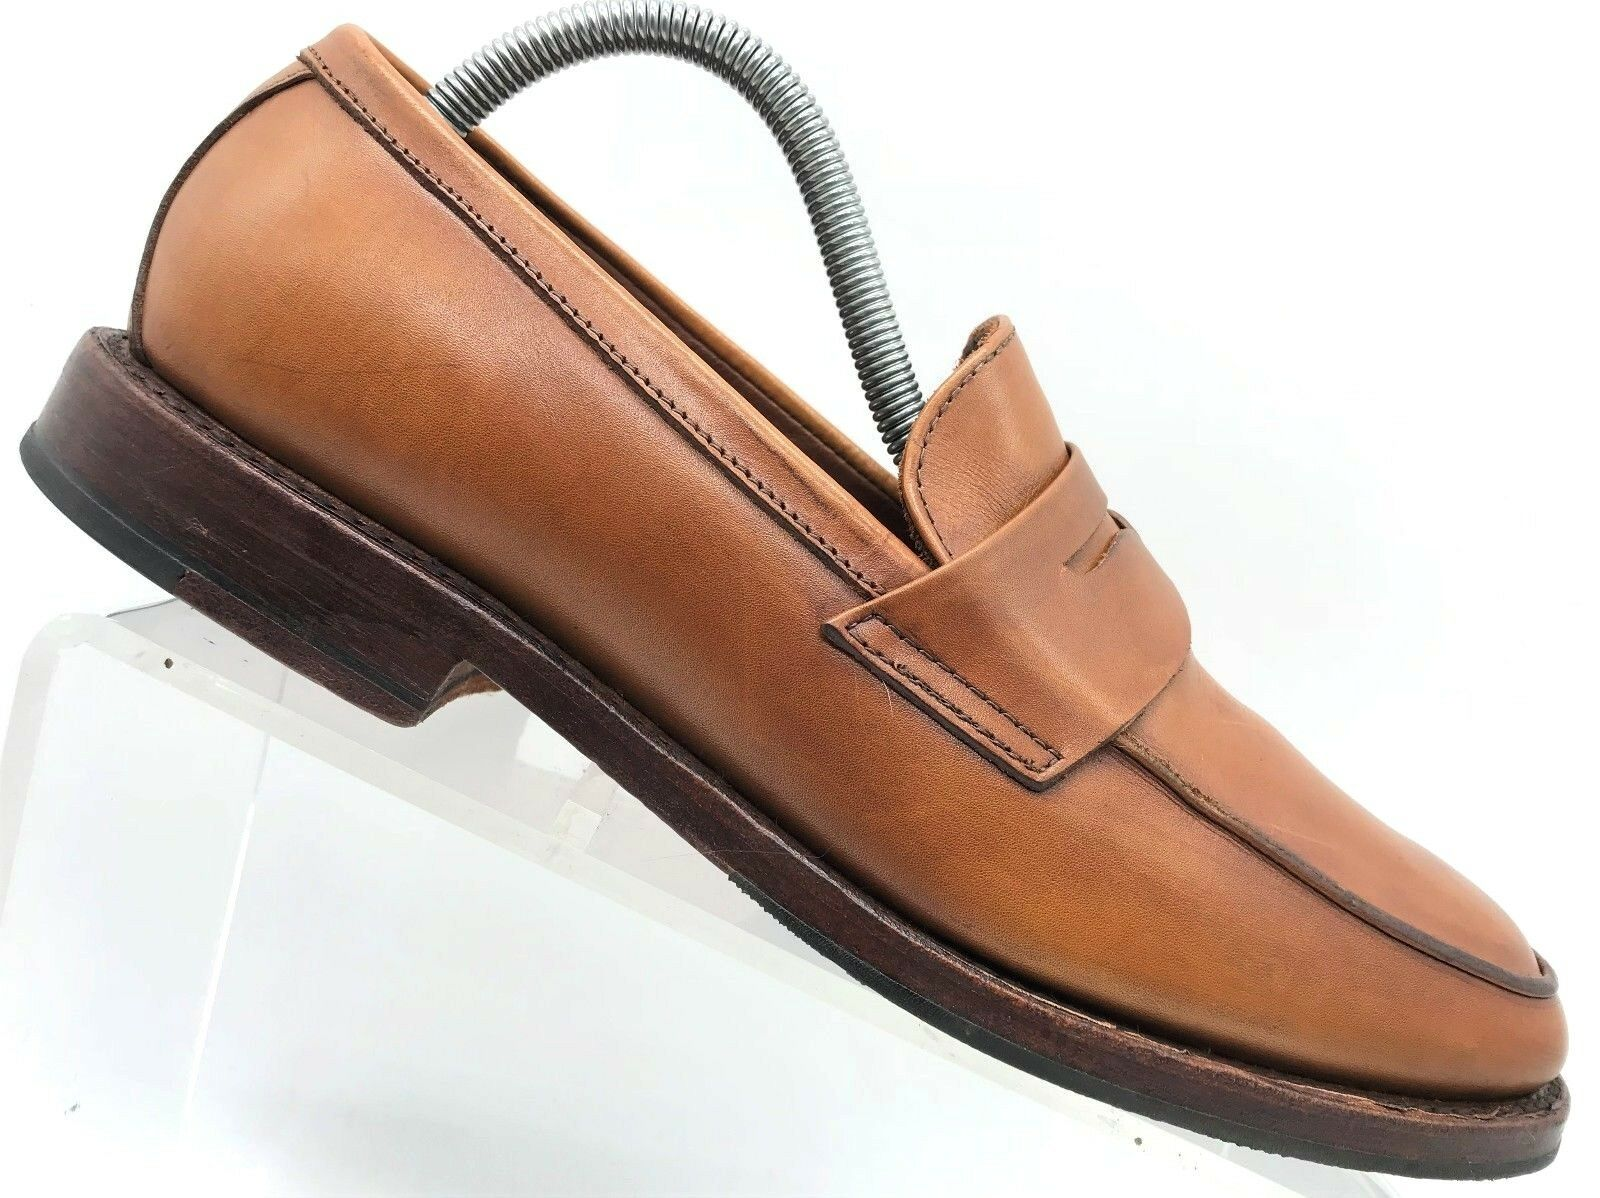 Brooks Bredhers Brown Leather Slip On Penny Loafers Men's shoes 8 D